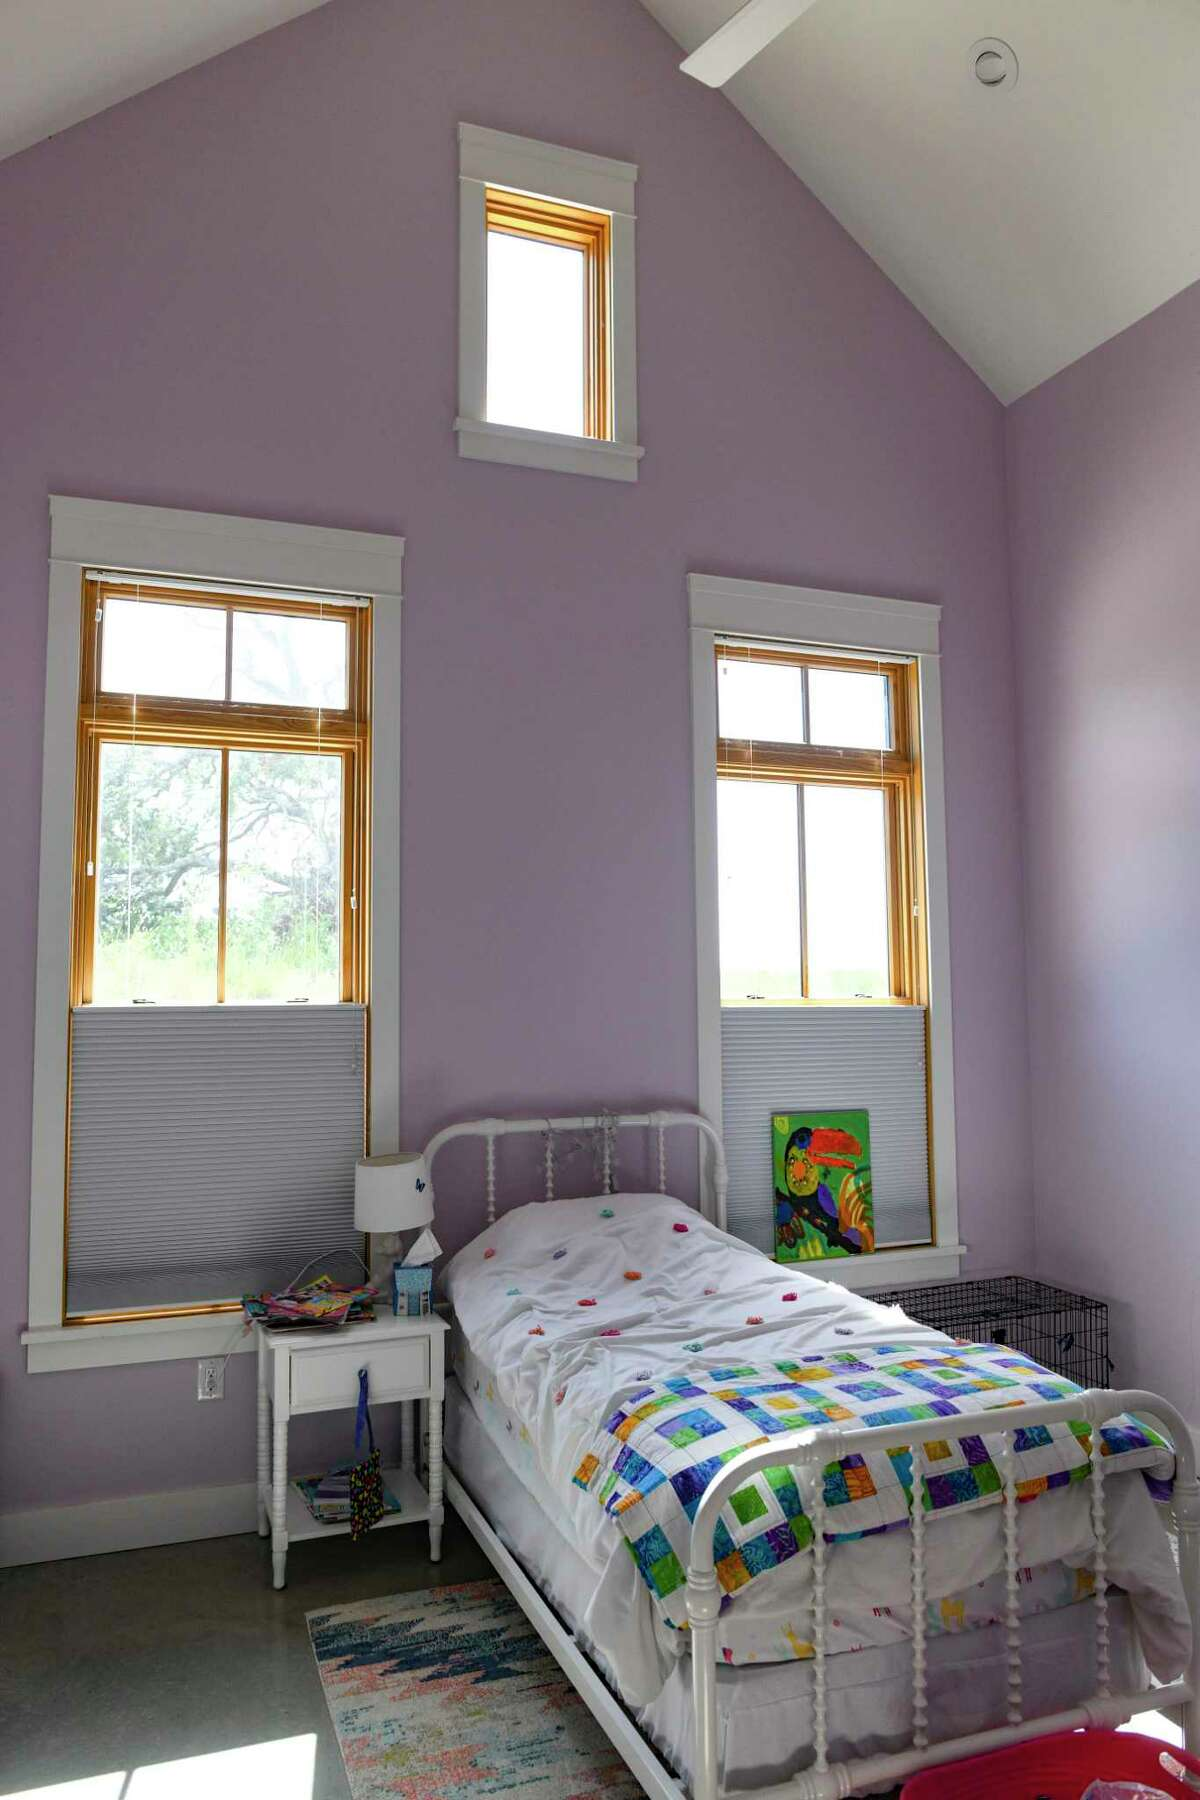 This is a child's bedroom in the Texas Wine Country home of Carey and Regan Meador at Southold Farm + Cellar.